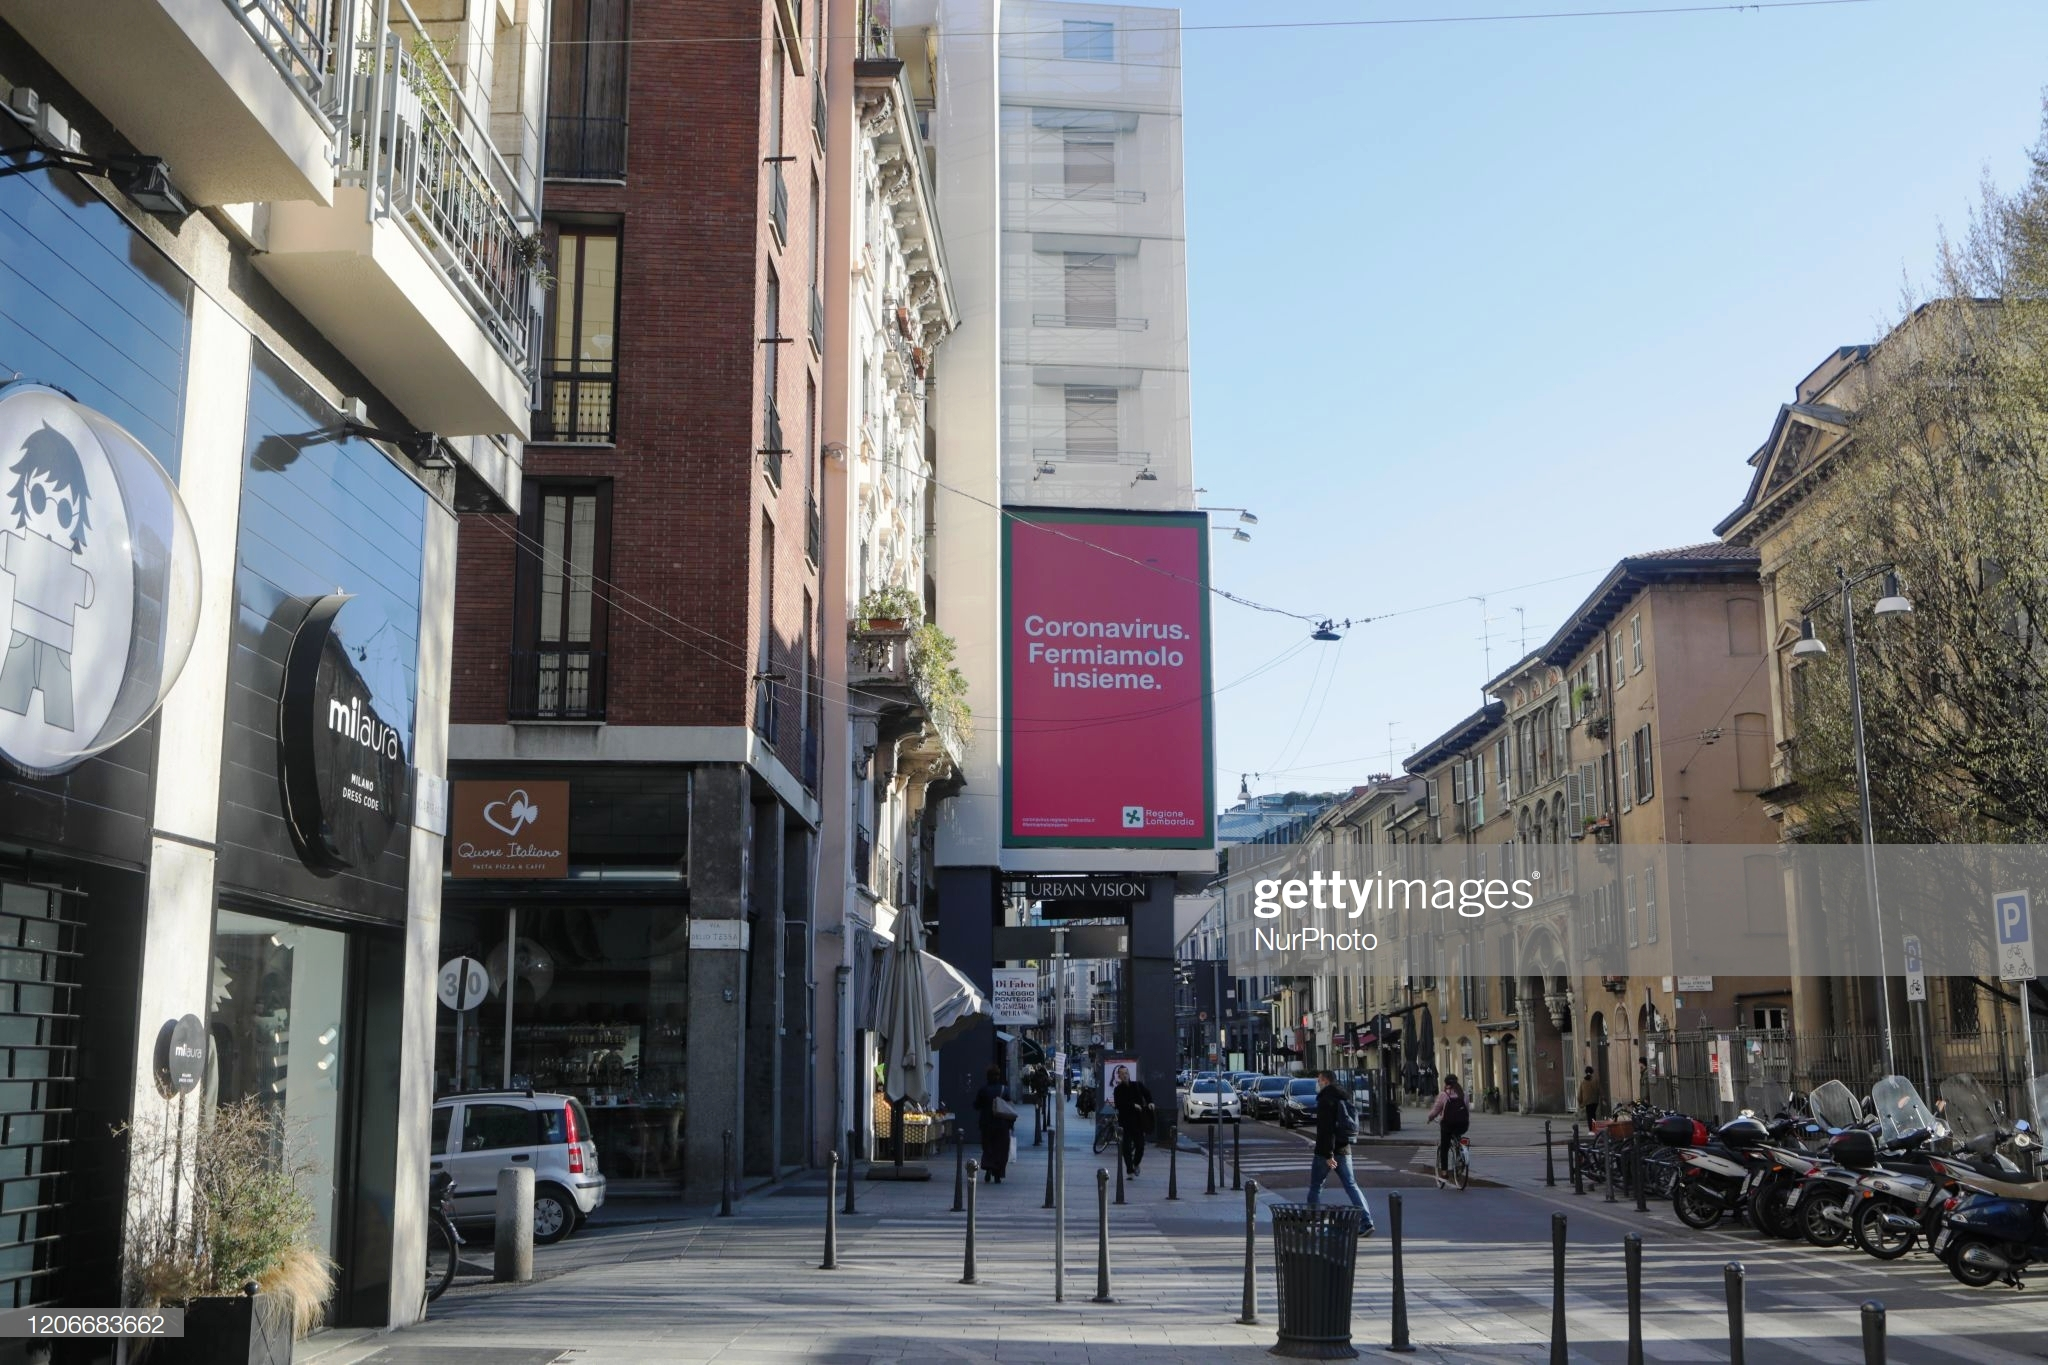 a-general-view-of-corso-garibaldi-on-march-11-2020-in-milan-italy.-photo-by-mairo-cinquetti-nurphoto-via-getty-images-editada